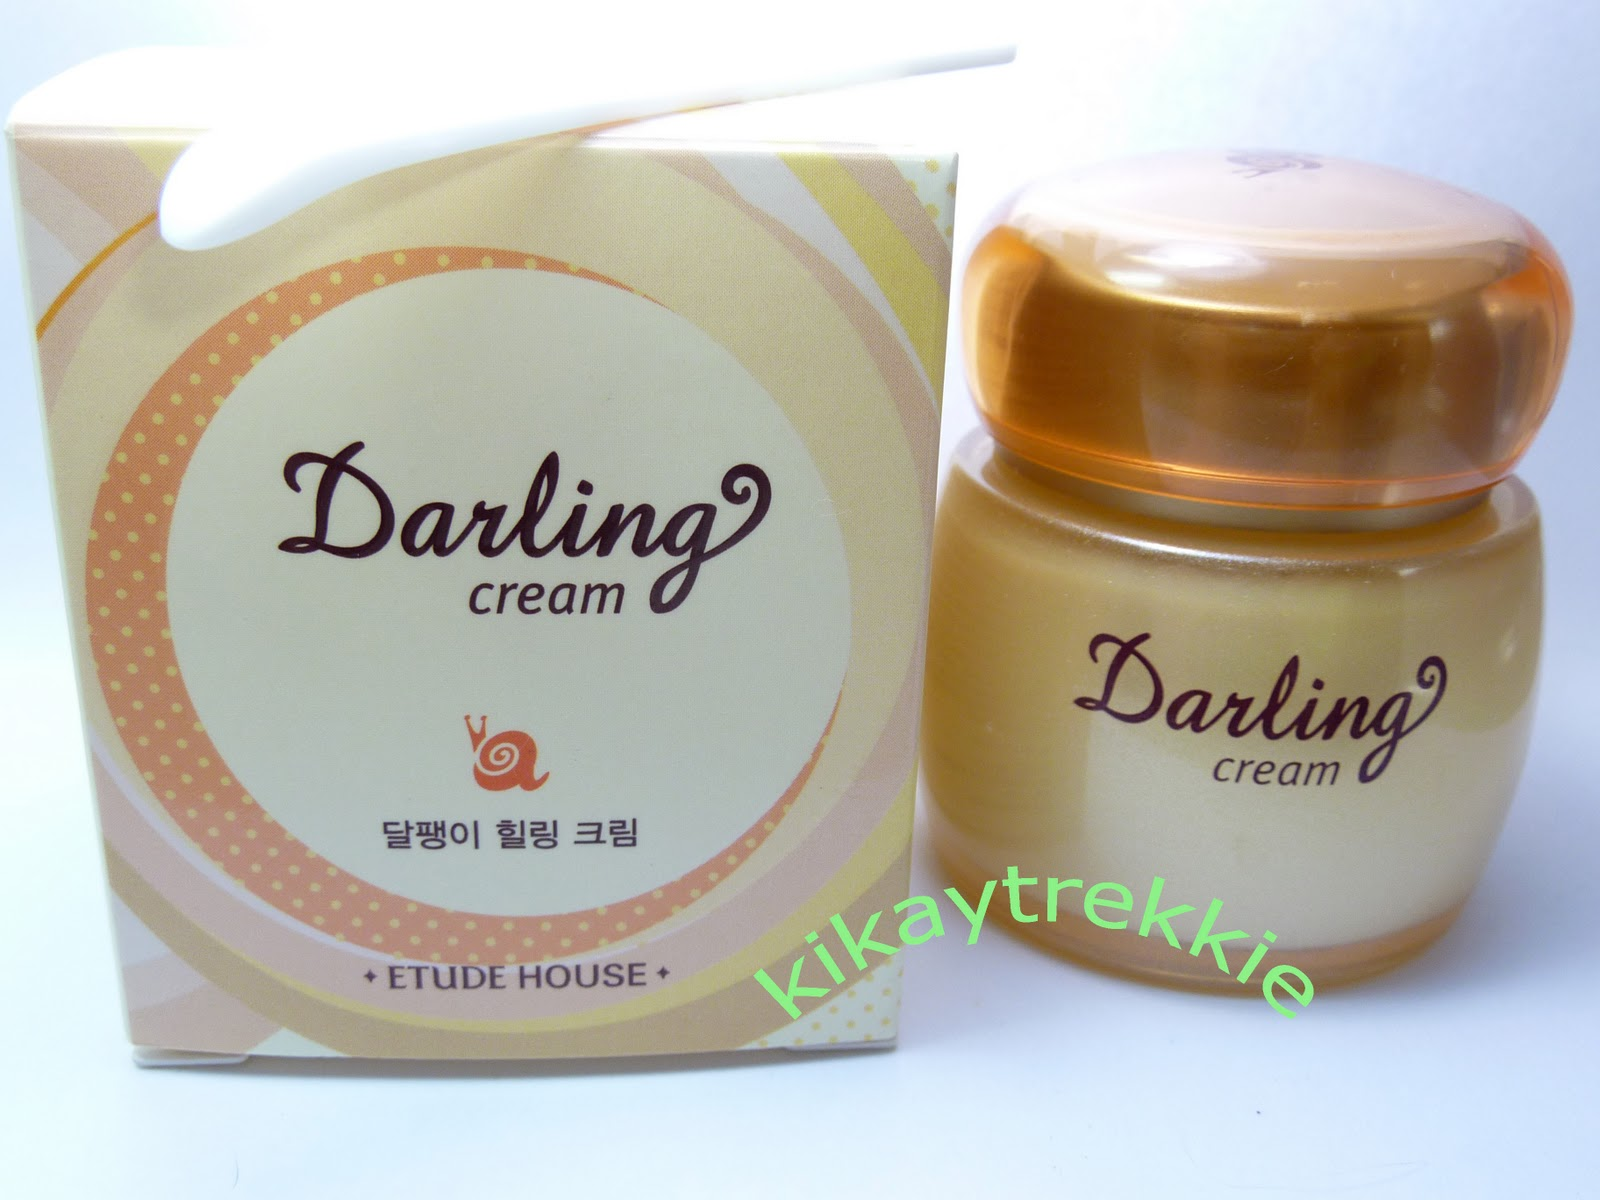 Kikay Trekkie Review Etude House Darling Snail Cream Tony Moly Berrianne Addendum This Is P119800 Healing 50ml It Has 73 Mucin Information Based On Website